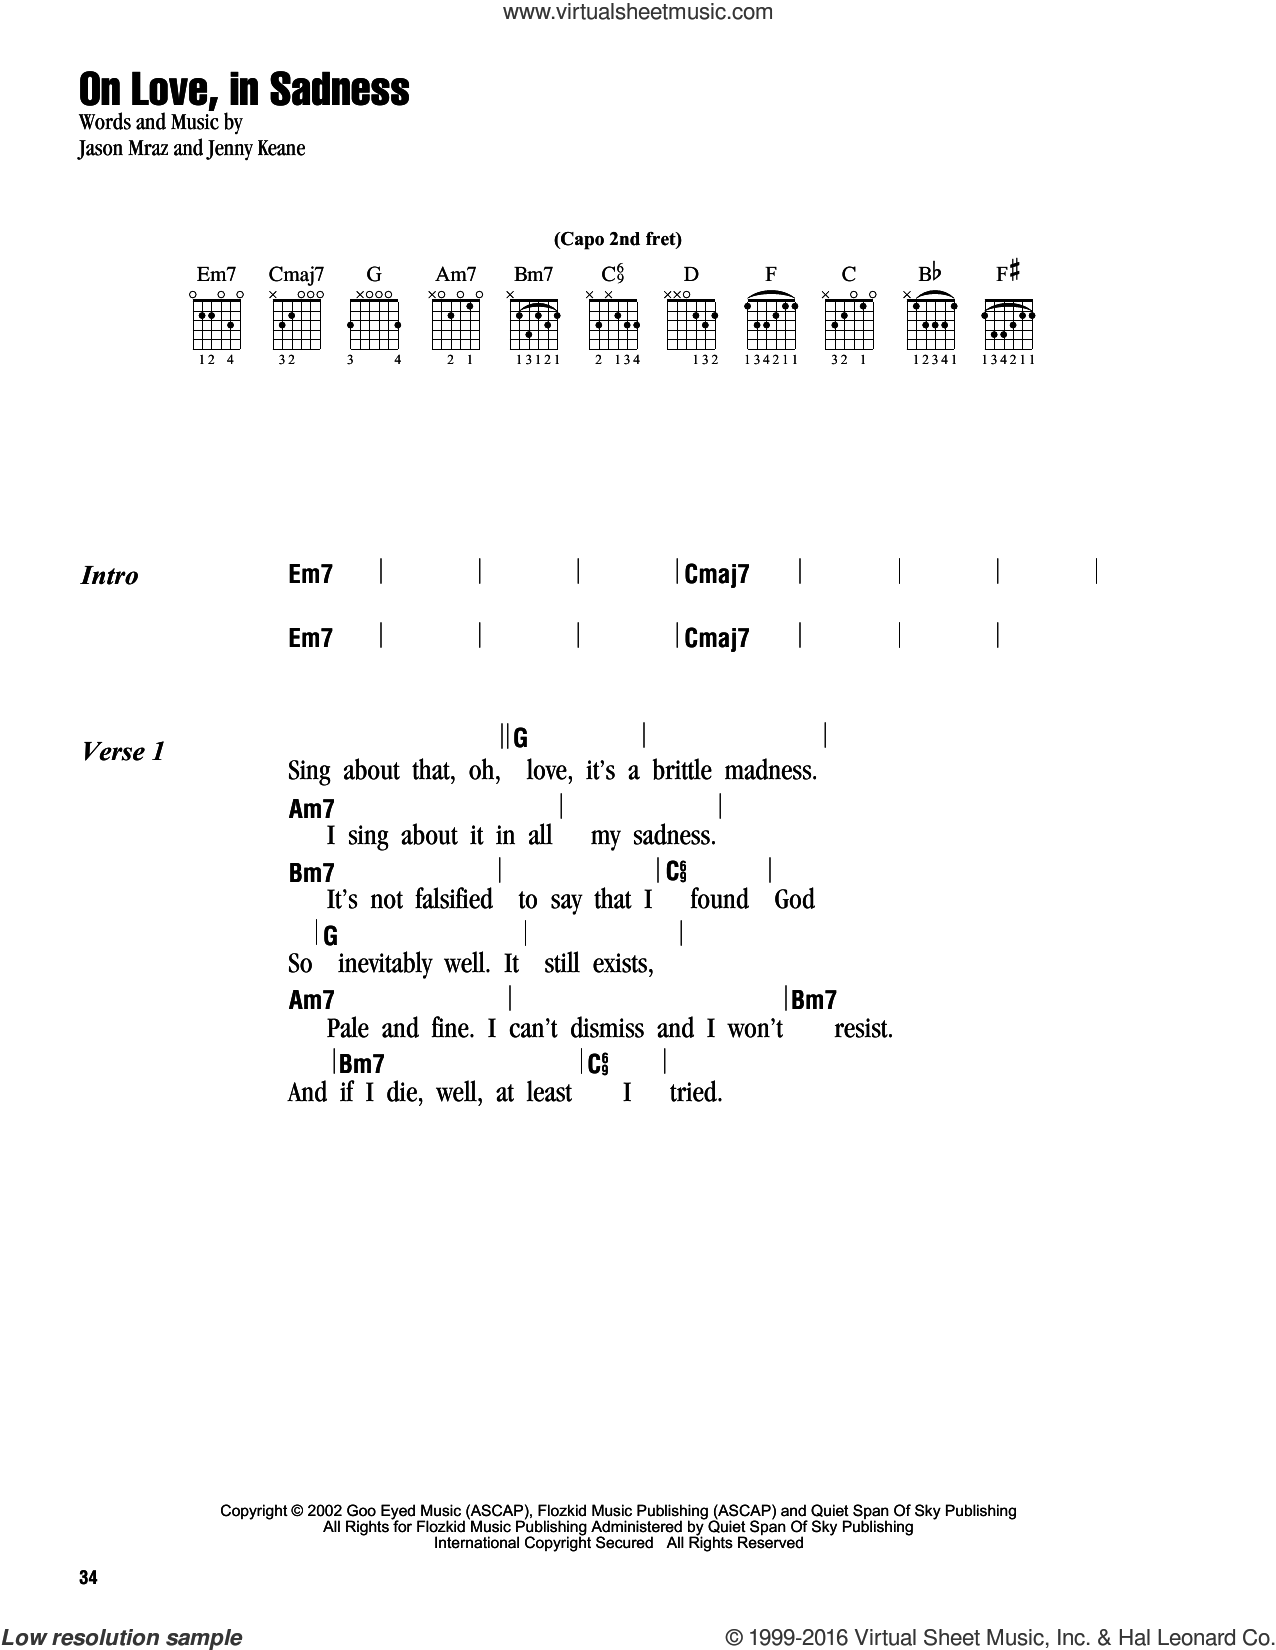 On Love, In Sadness sheet music for guitar (chords) by Jason Mraz and Jenny Keane, intermediate skill level